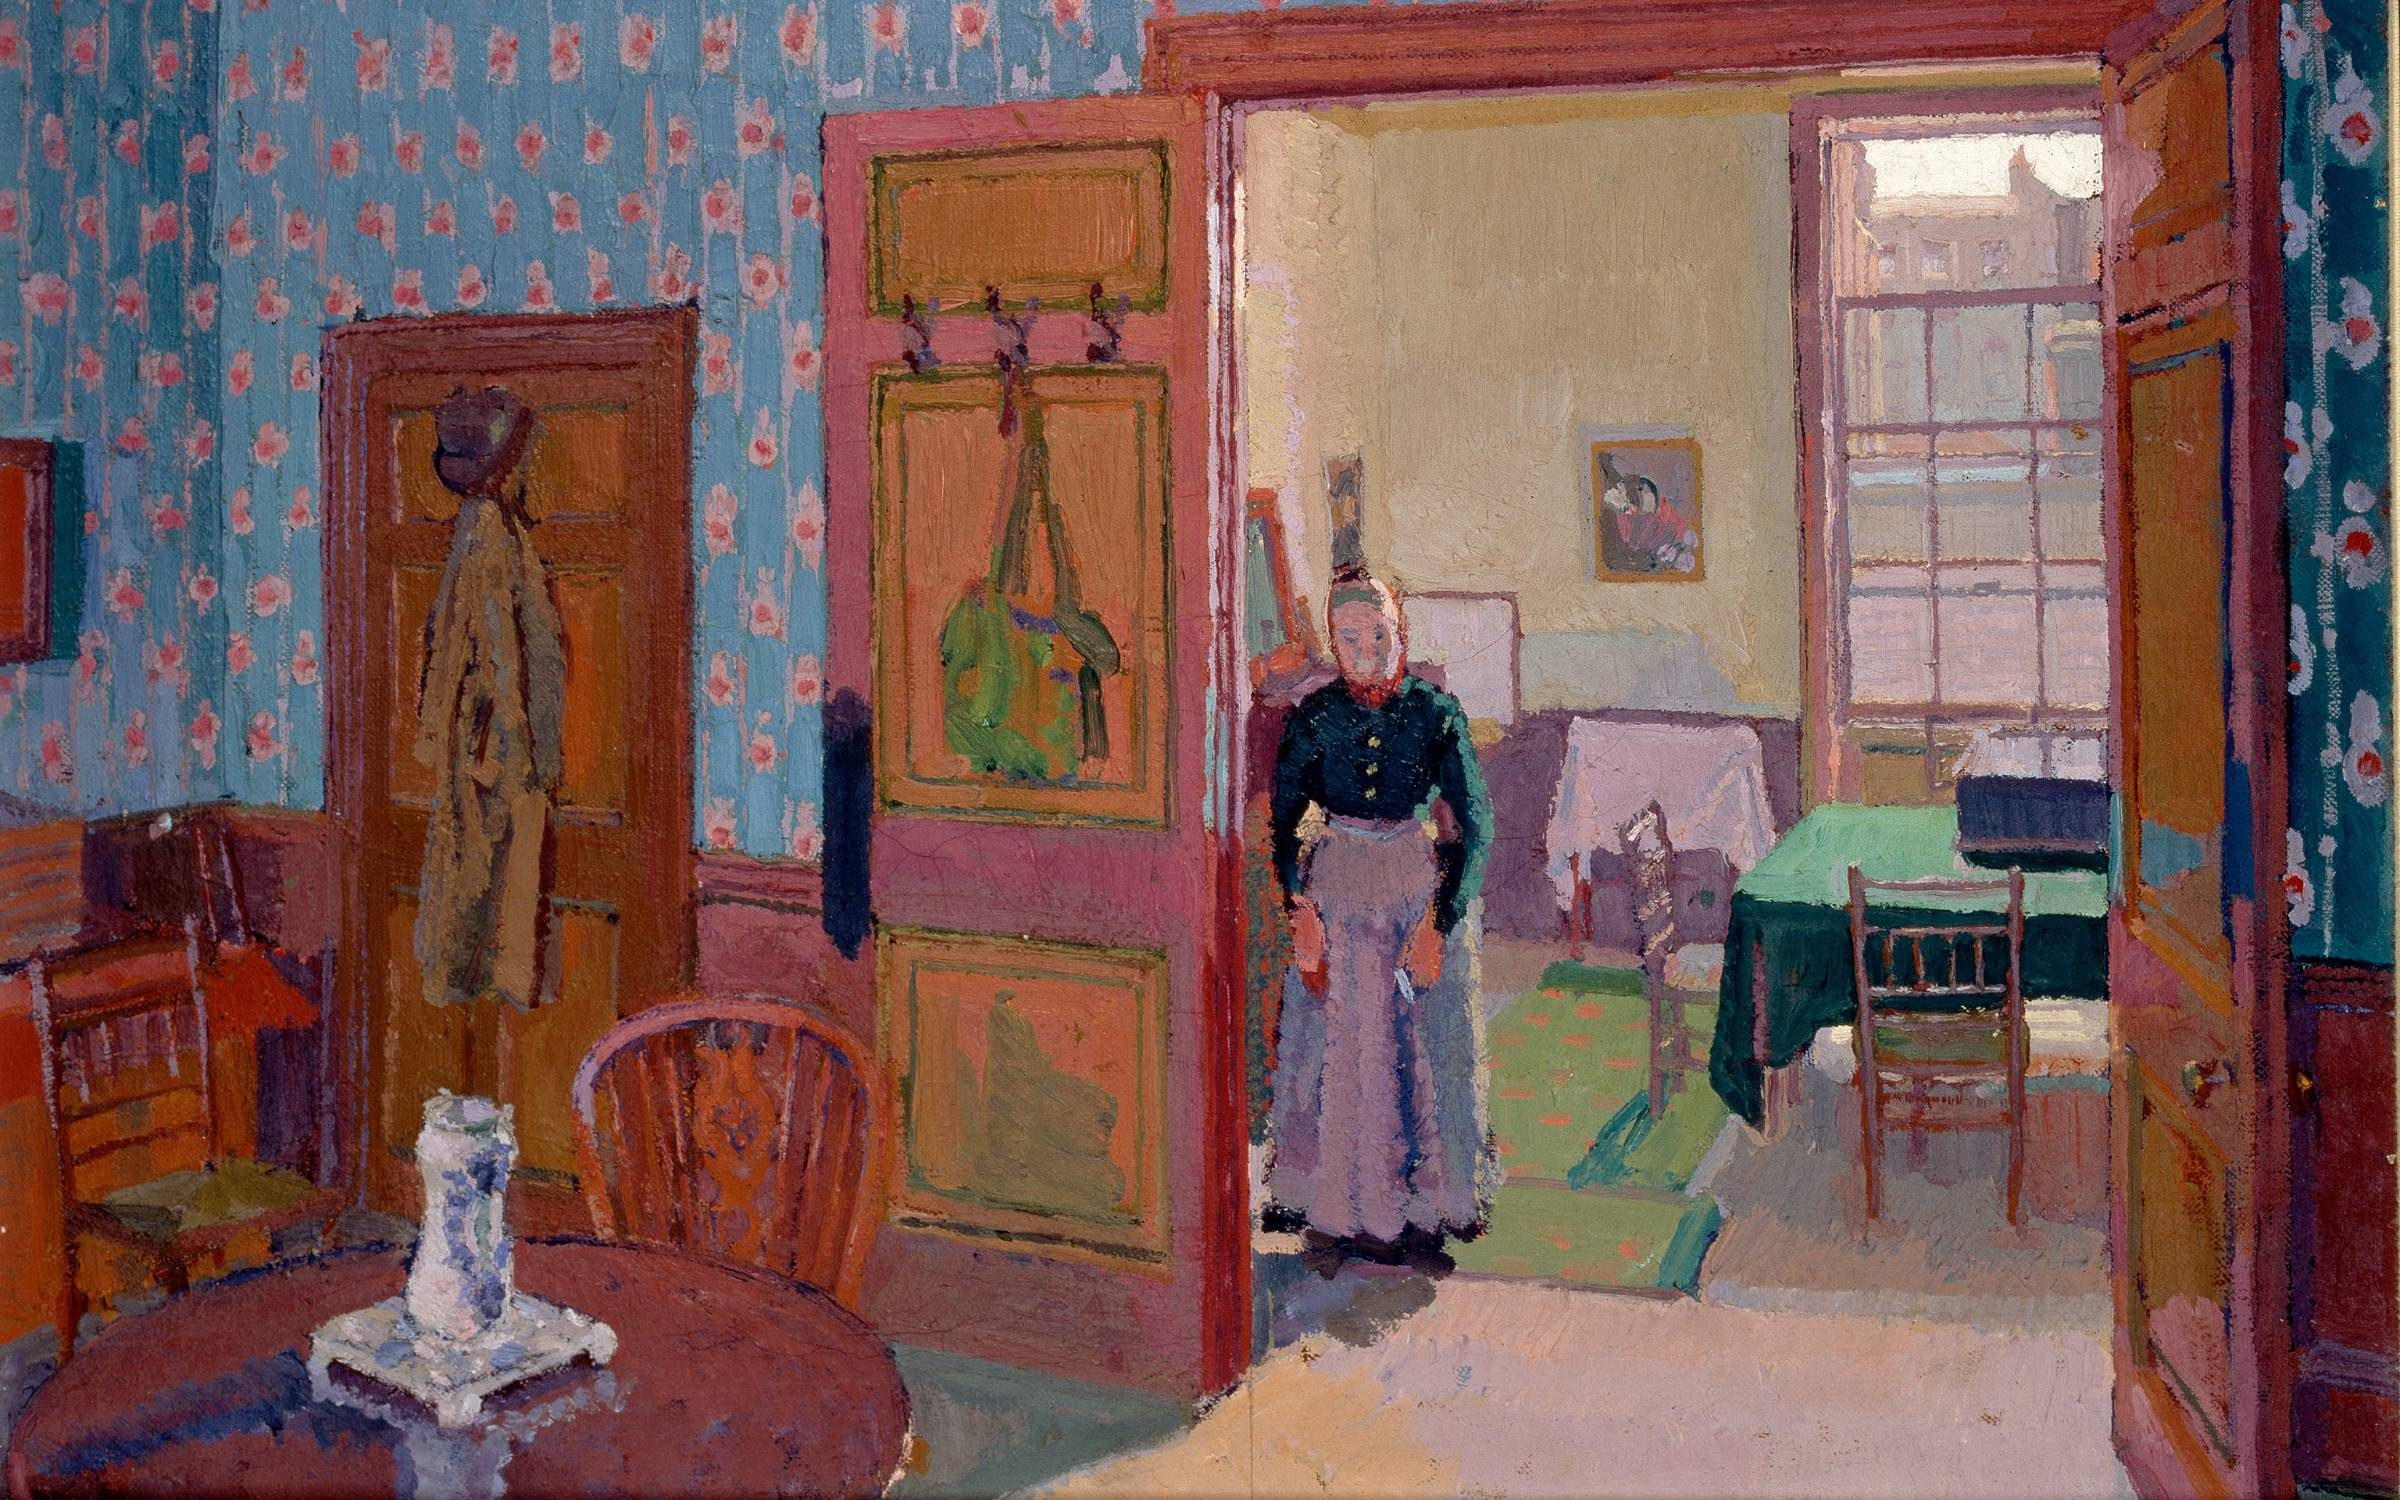 Interior With Mrs Mounter Interior with Mrs Mounter, 1916-1917. Artist Harold Gilman. (Photo by Ashmolean Museum/Heritage Images/Getty Images)